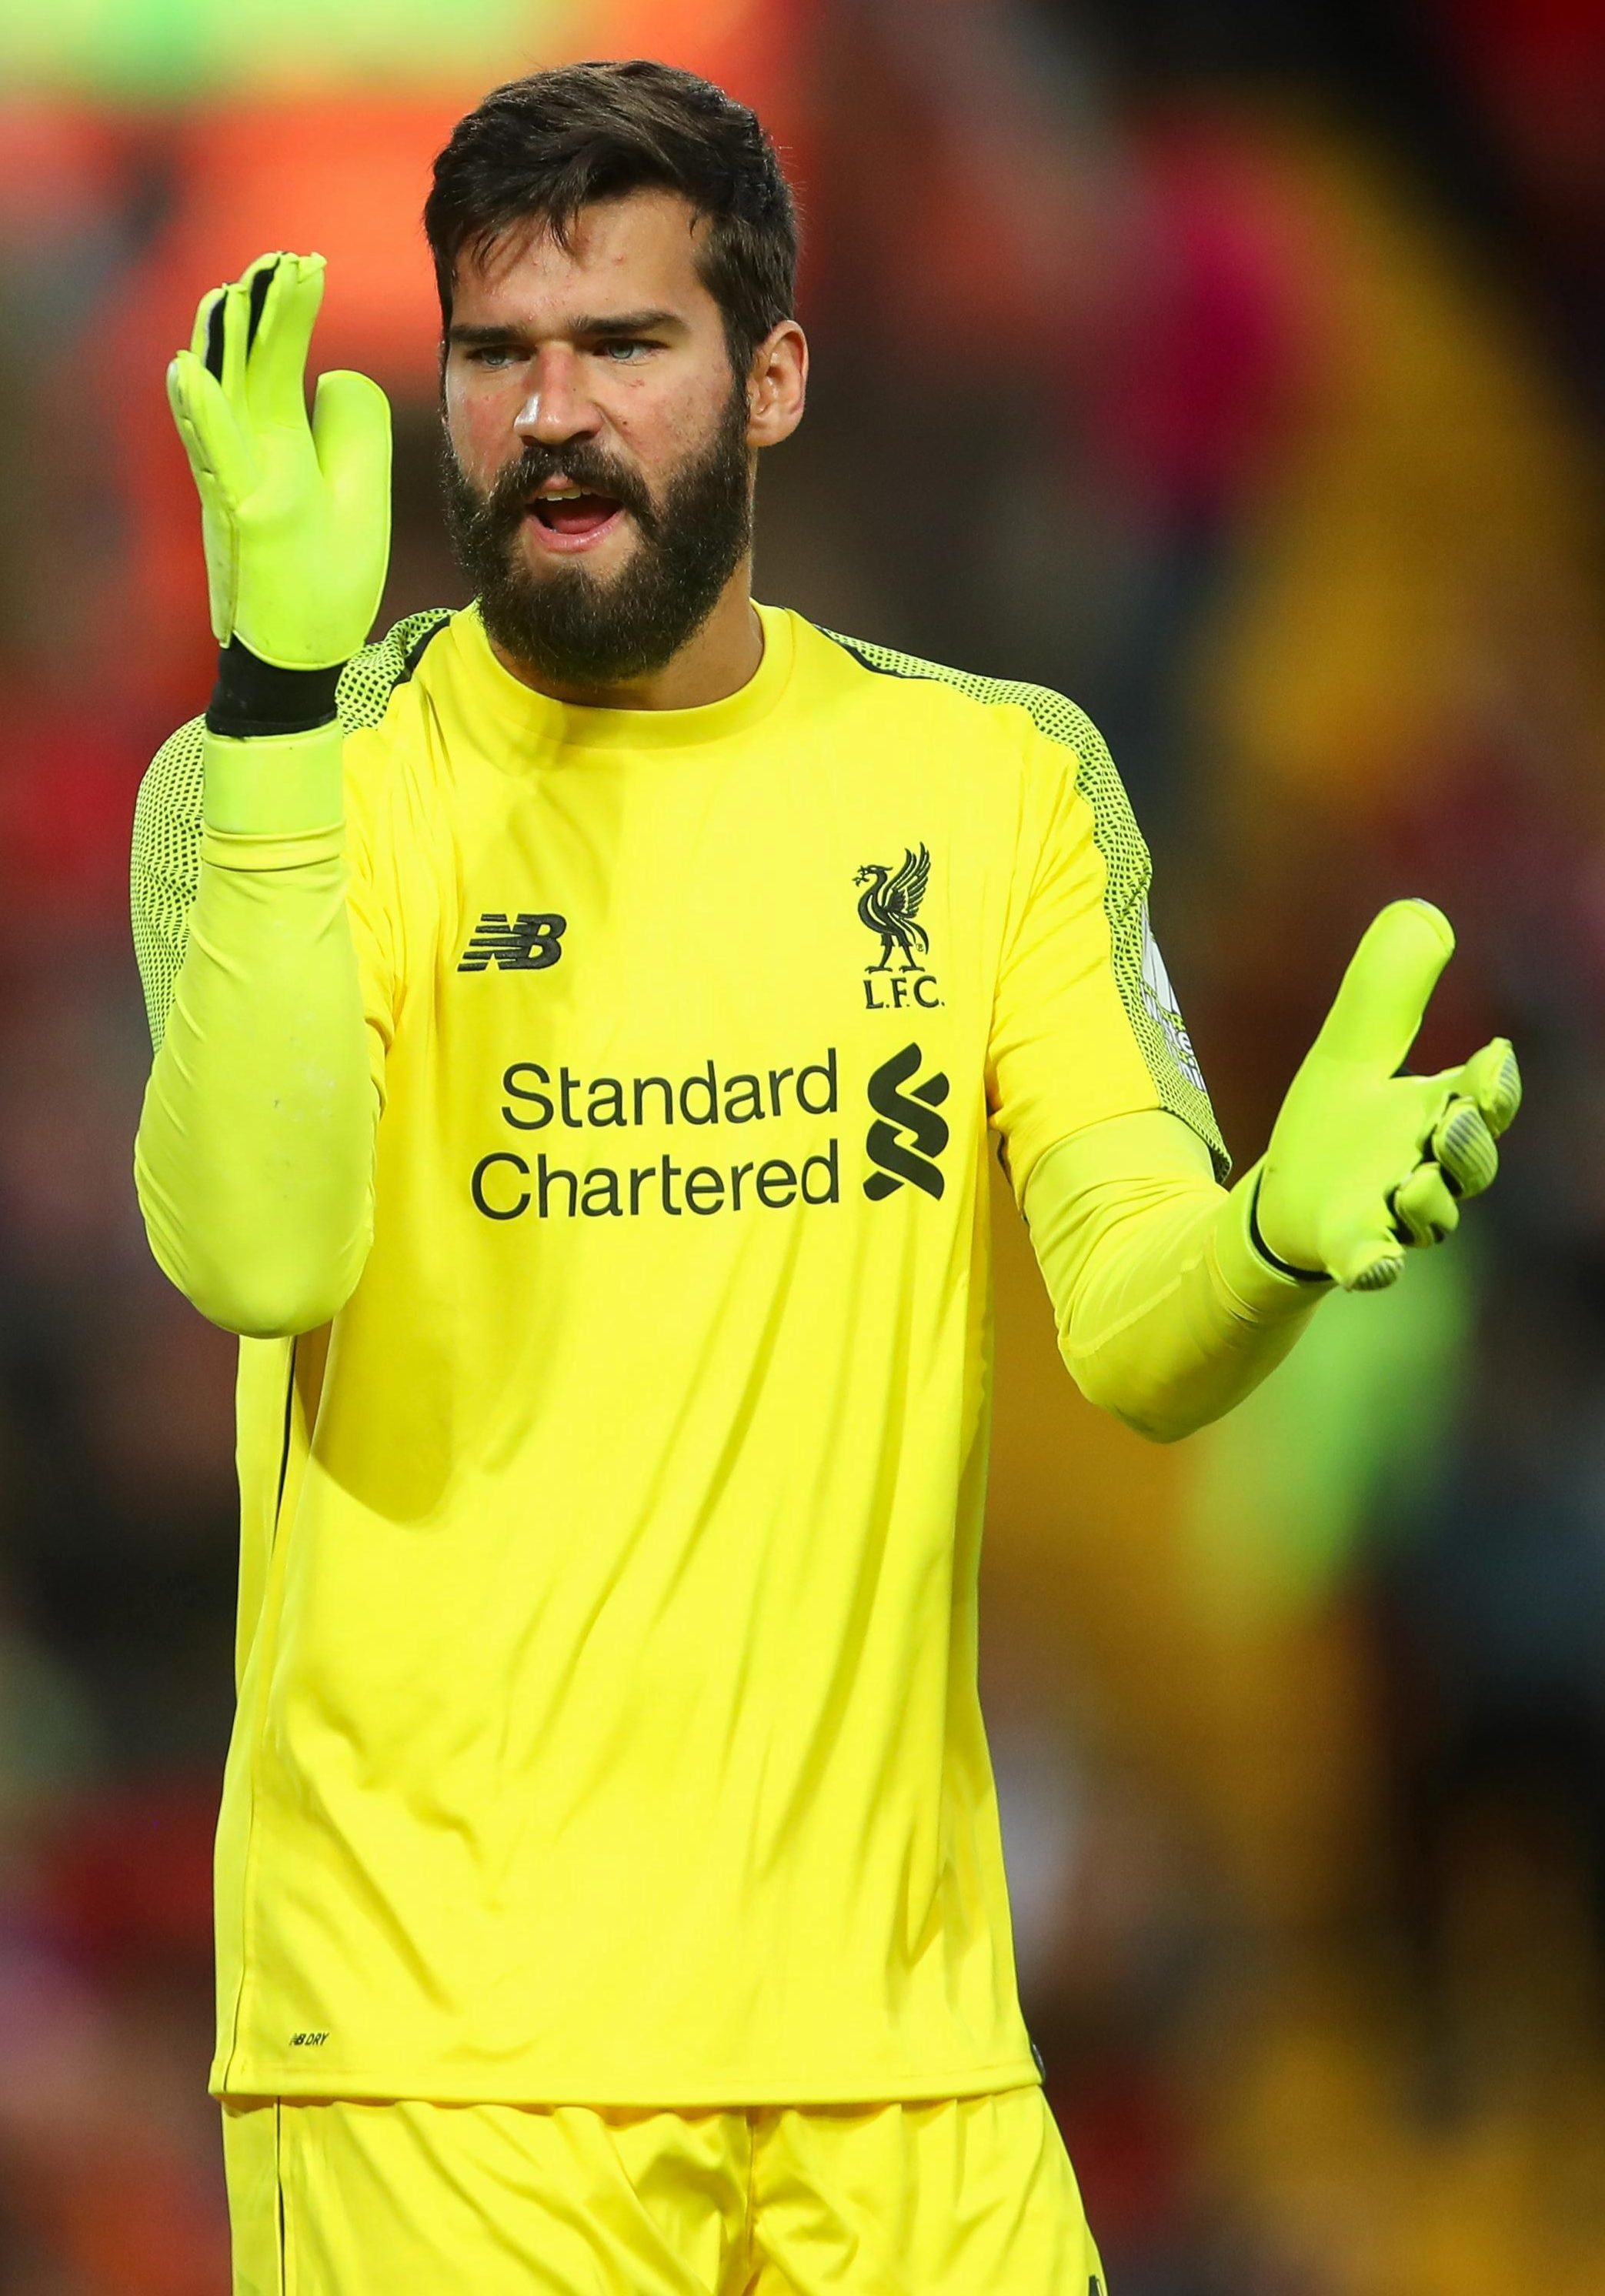 Liverpool fans got to see Brazil regular Alisson, the world's second-most expensive keeper at £67million, in the friendly against Torino